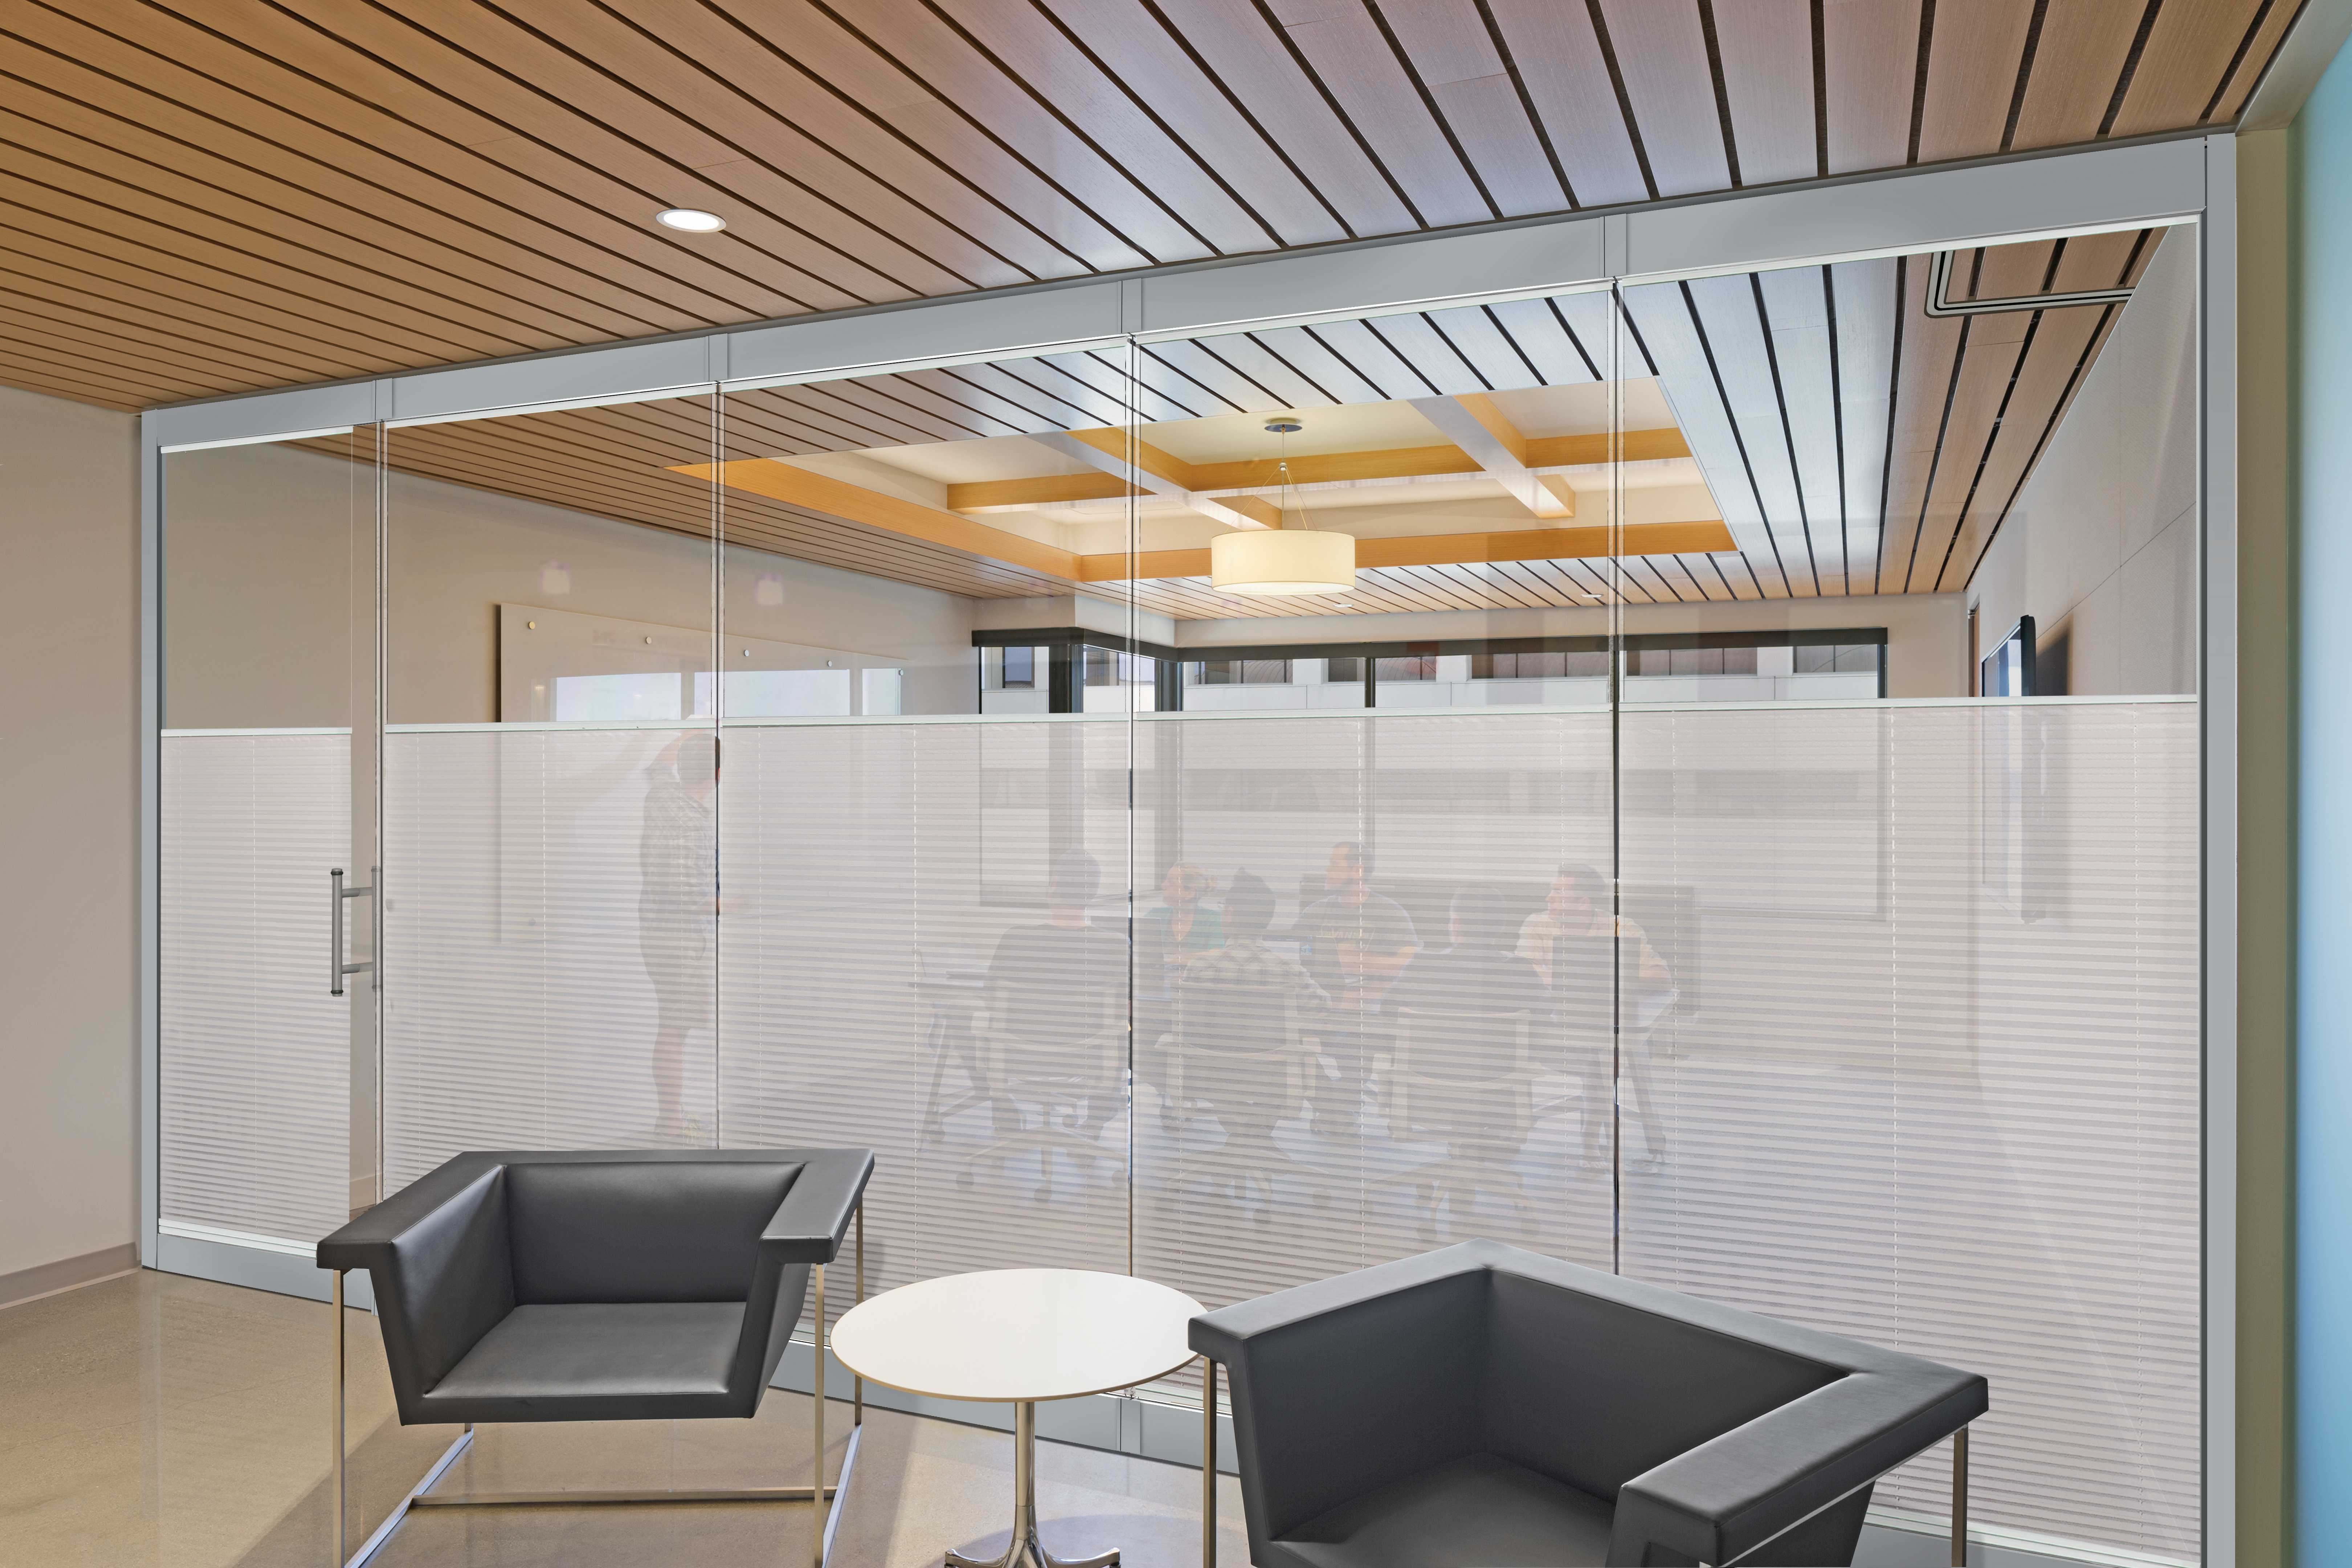 Watch: Frameless Glass Wall Panel System Can be Used for Privacy and